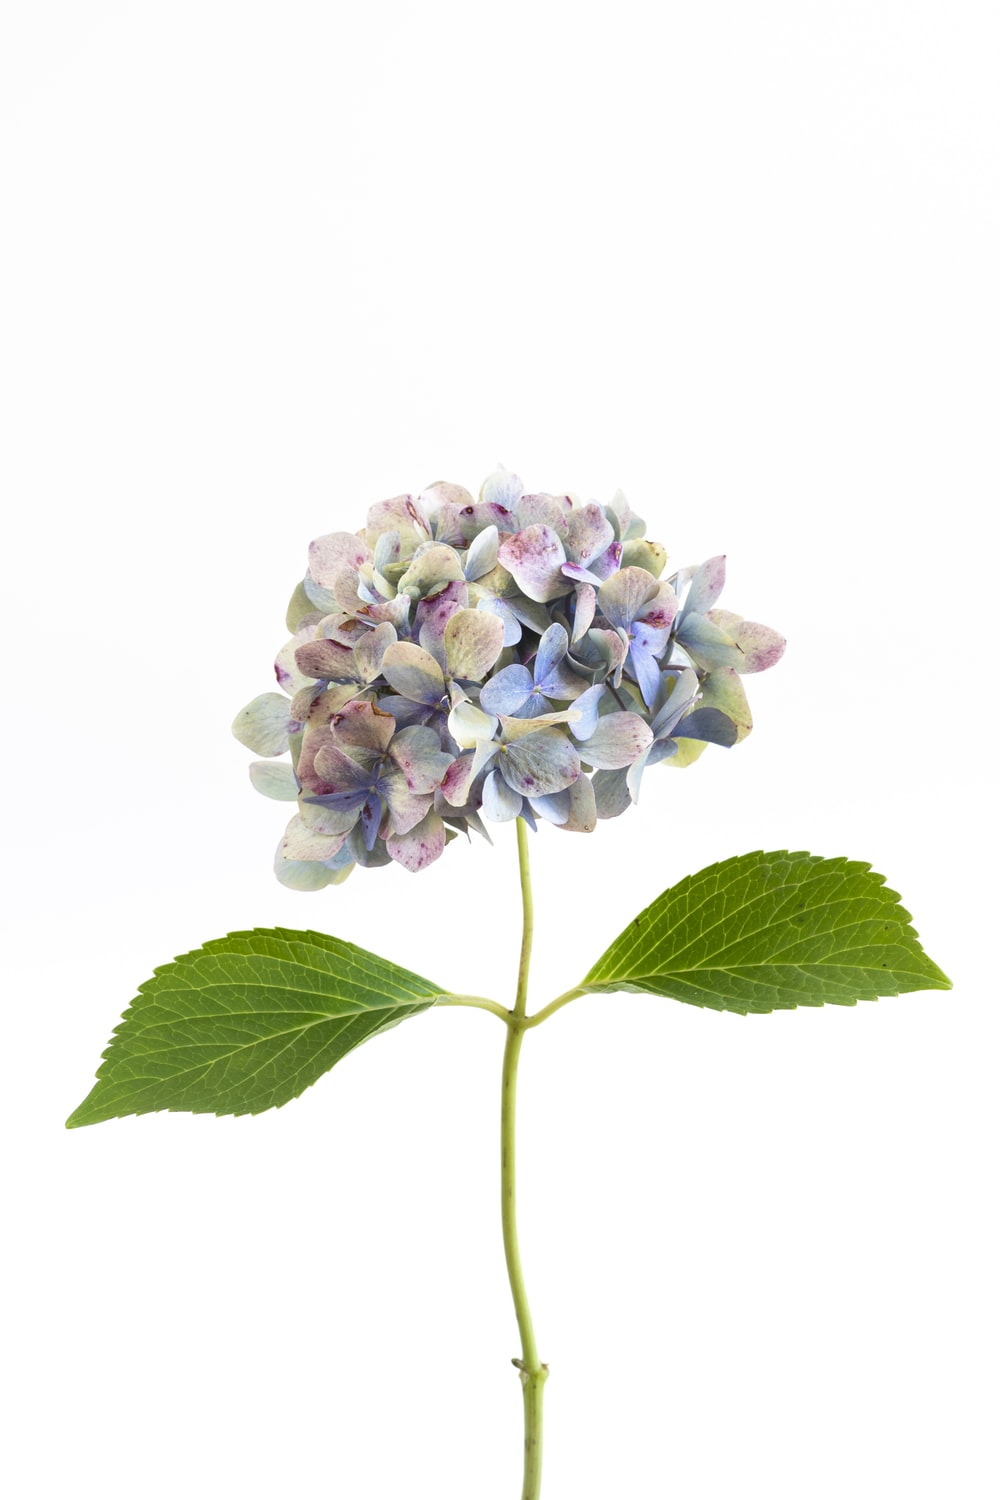 purple and white flower with green leaves